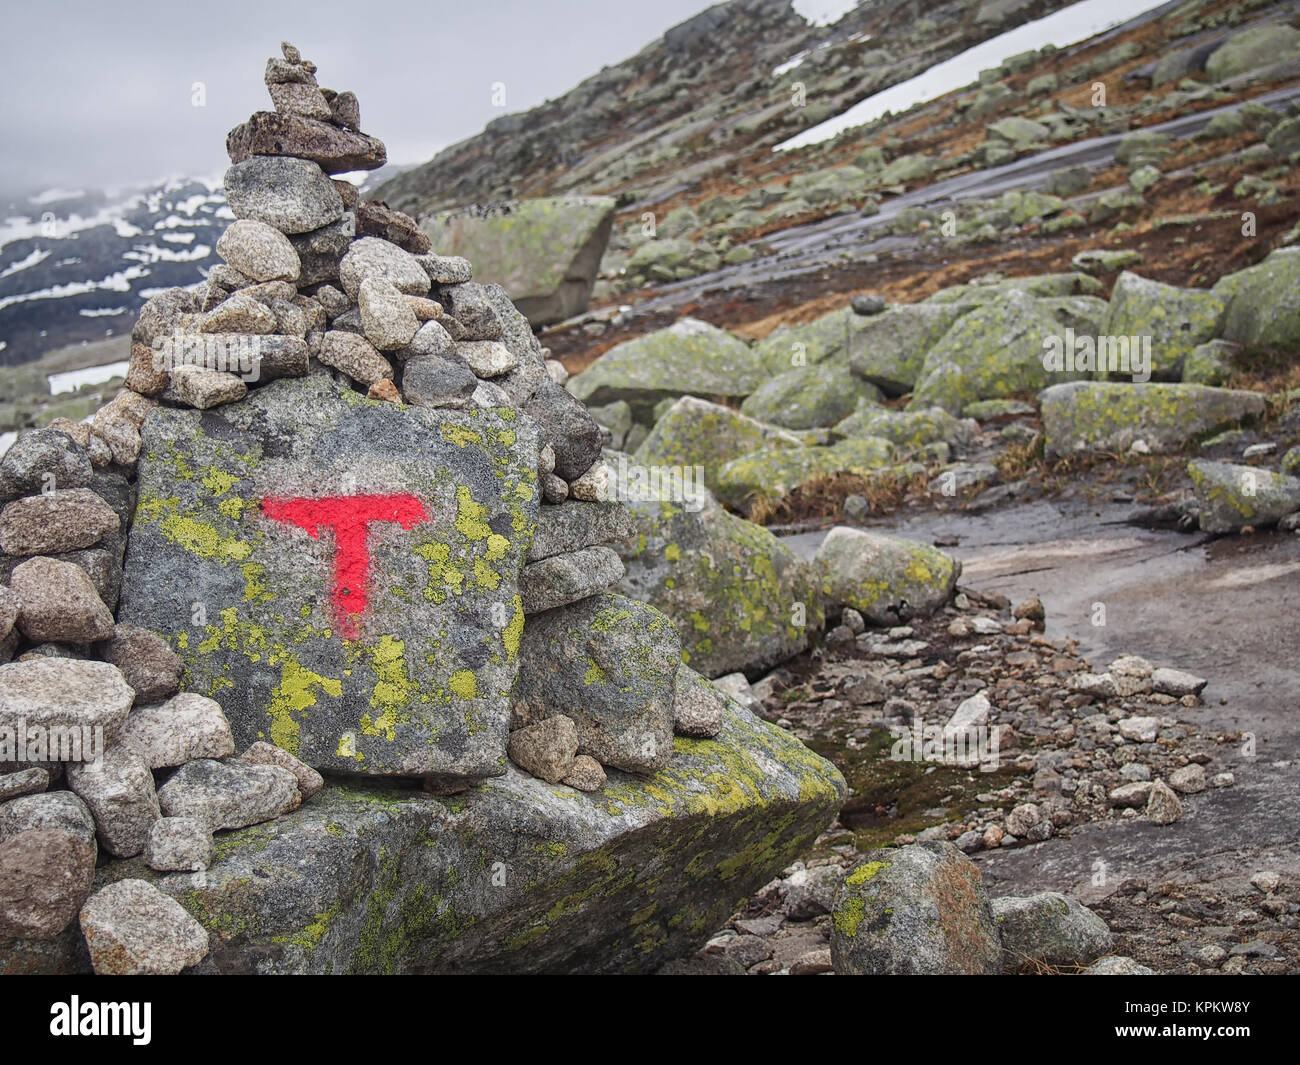 Cairn used as Trolltunga (Troll tongue) trail marker - Stock Image